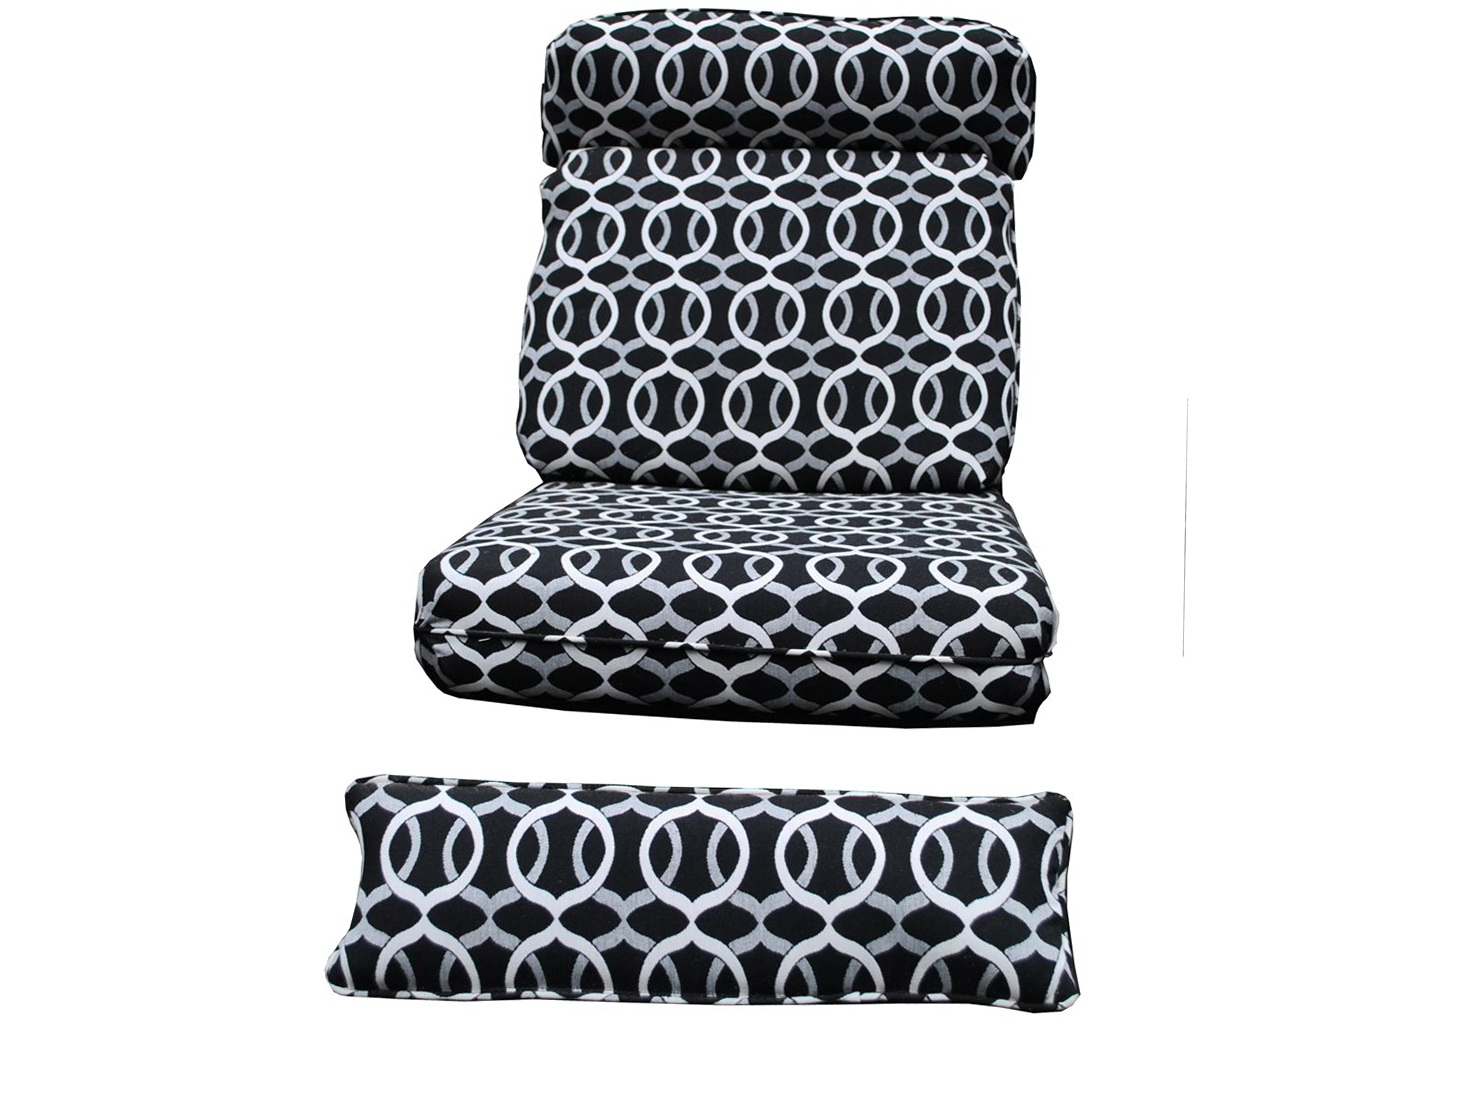 Deep seat patio cushions replacements home design ideas - Deep seat patio cushions replacements ...